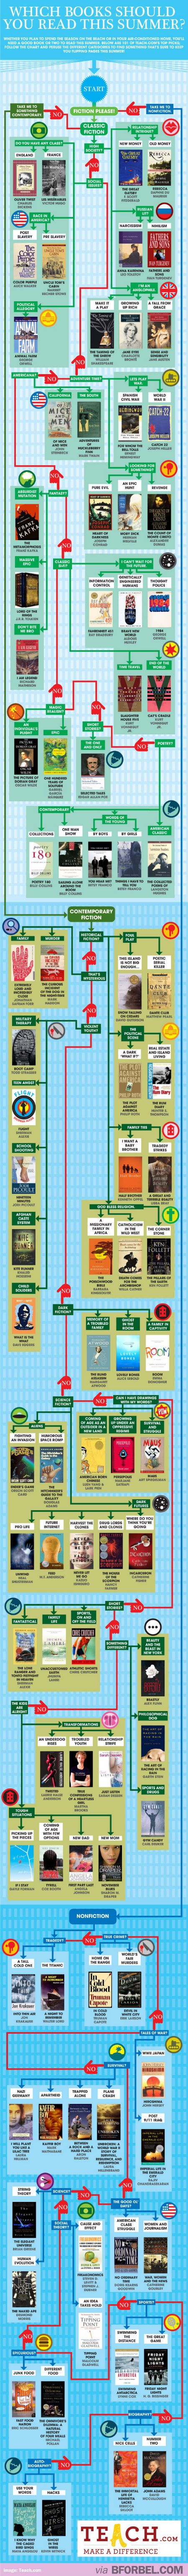 If you're looking for a good book this Summer… This infographic caters for every genre!